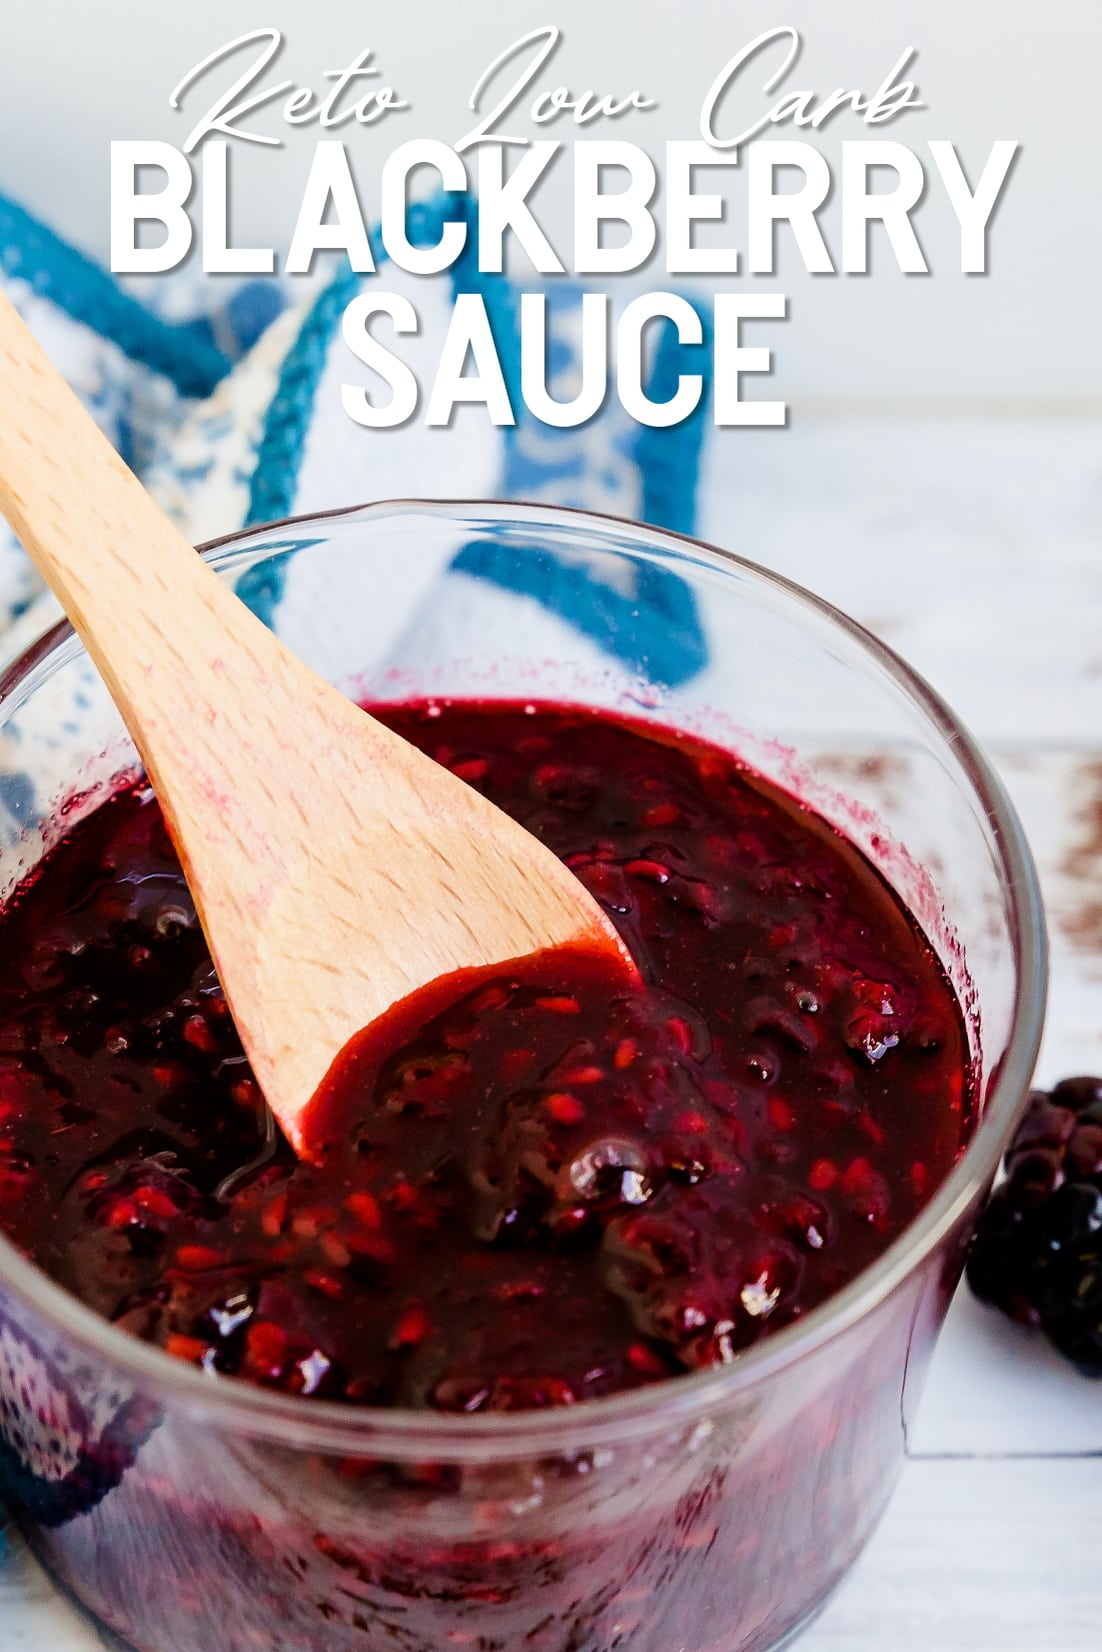 Keto Blackberry Sauce in a jar with a spoon